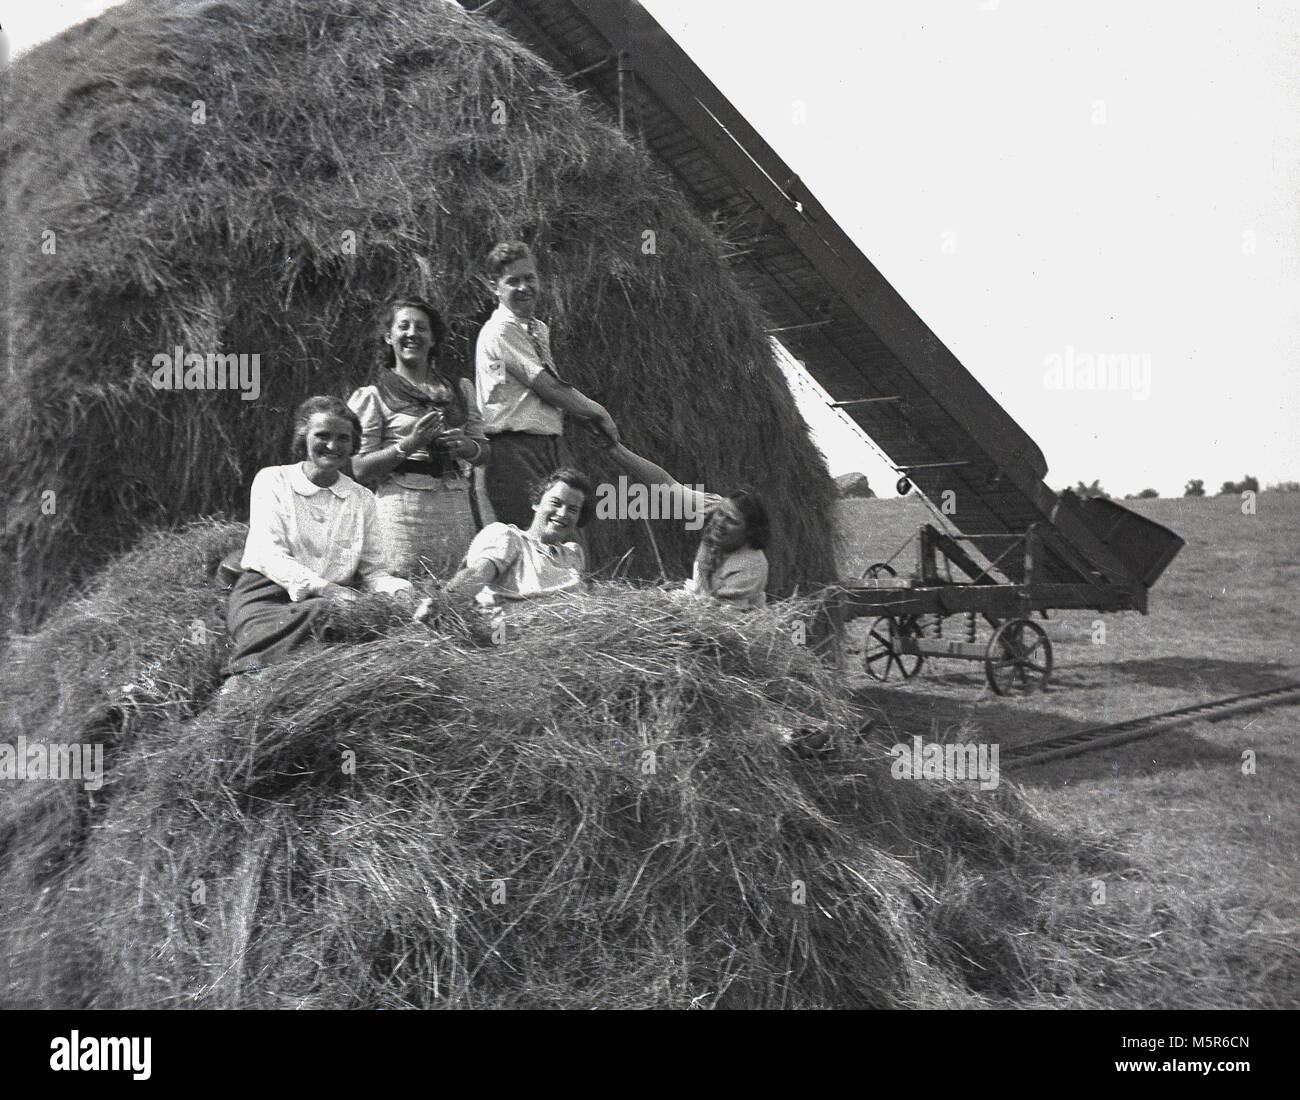 1937, historical picture, family enoying a rural holiday in the fresh air of Devon, England, having fun on a haystack Stock Photo